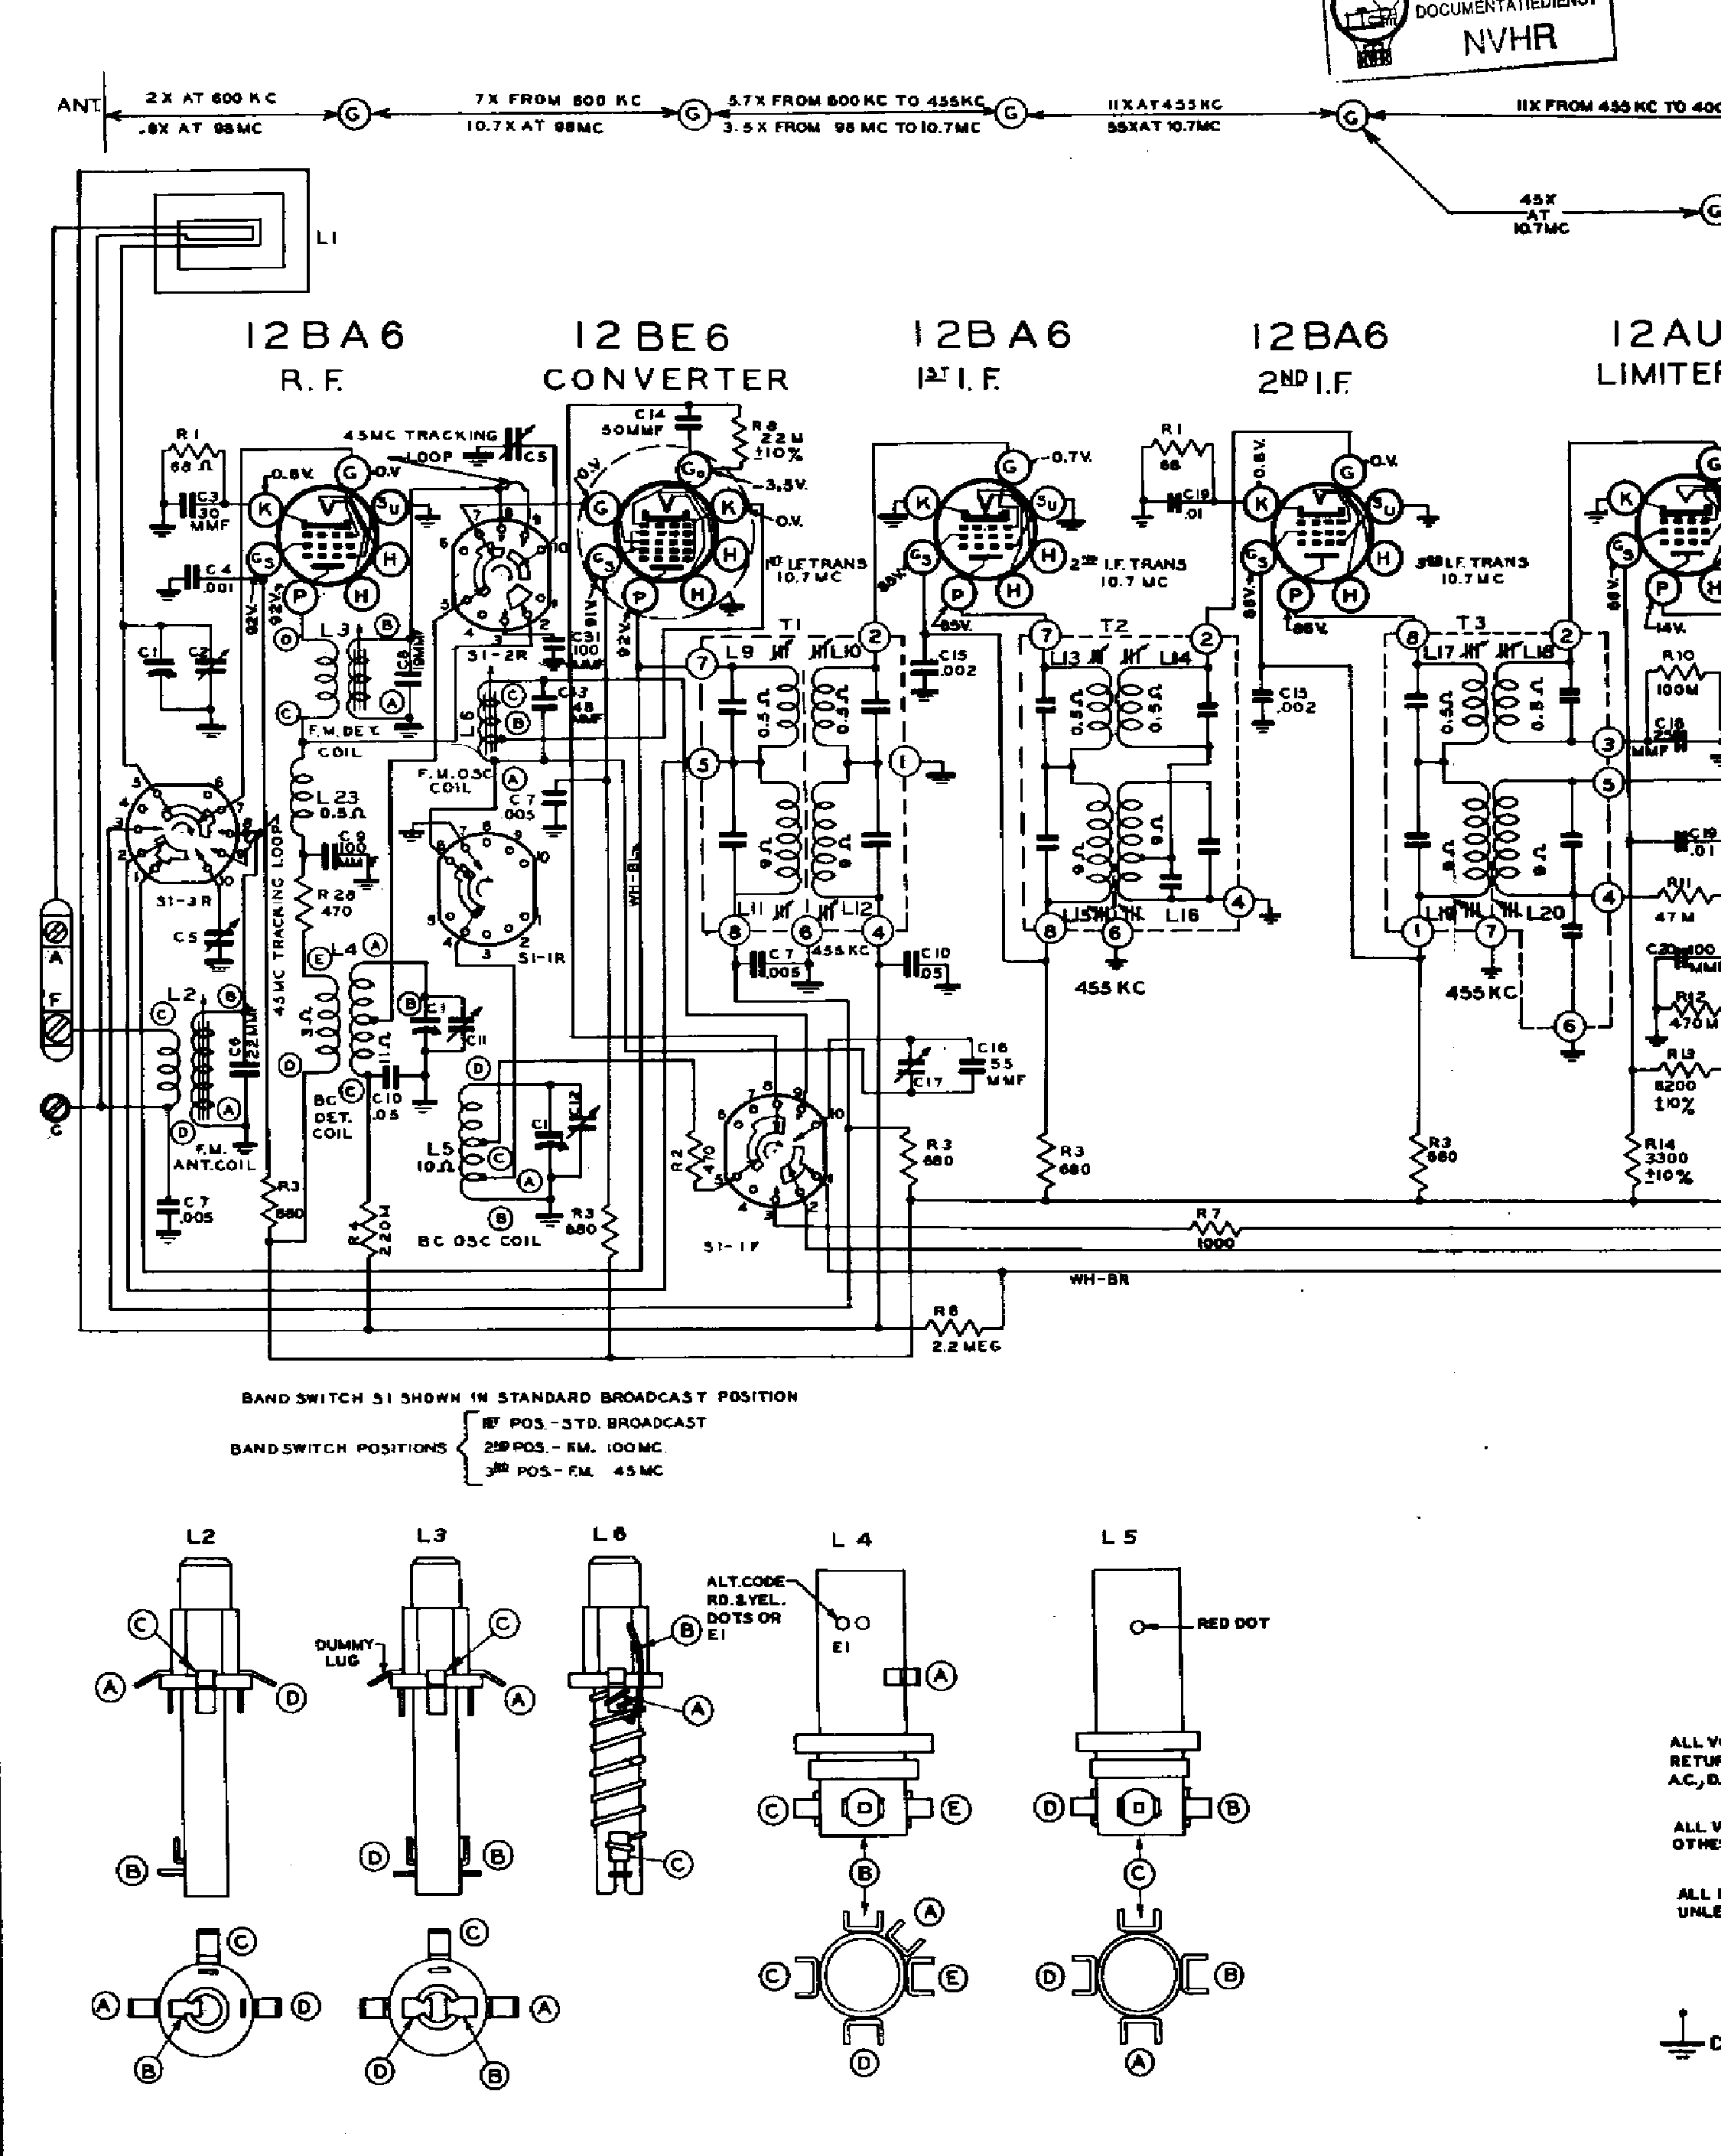 Zenith M660 Chassis 5m20 Sch Service Manual Free Download